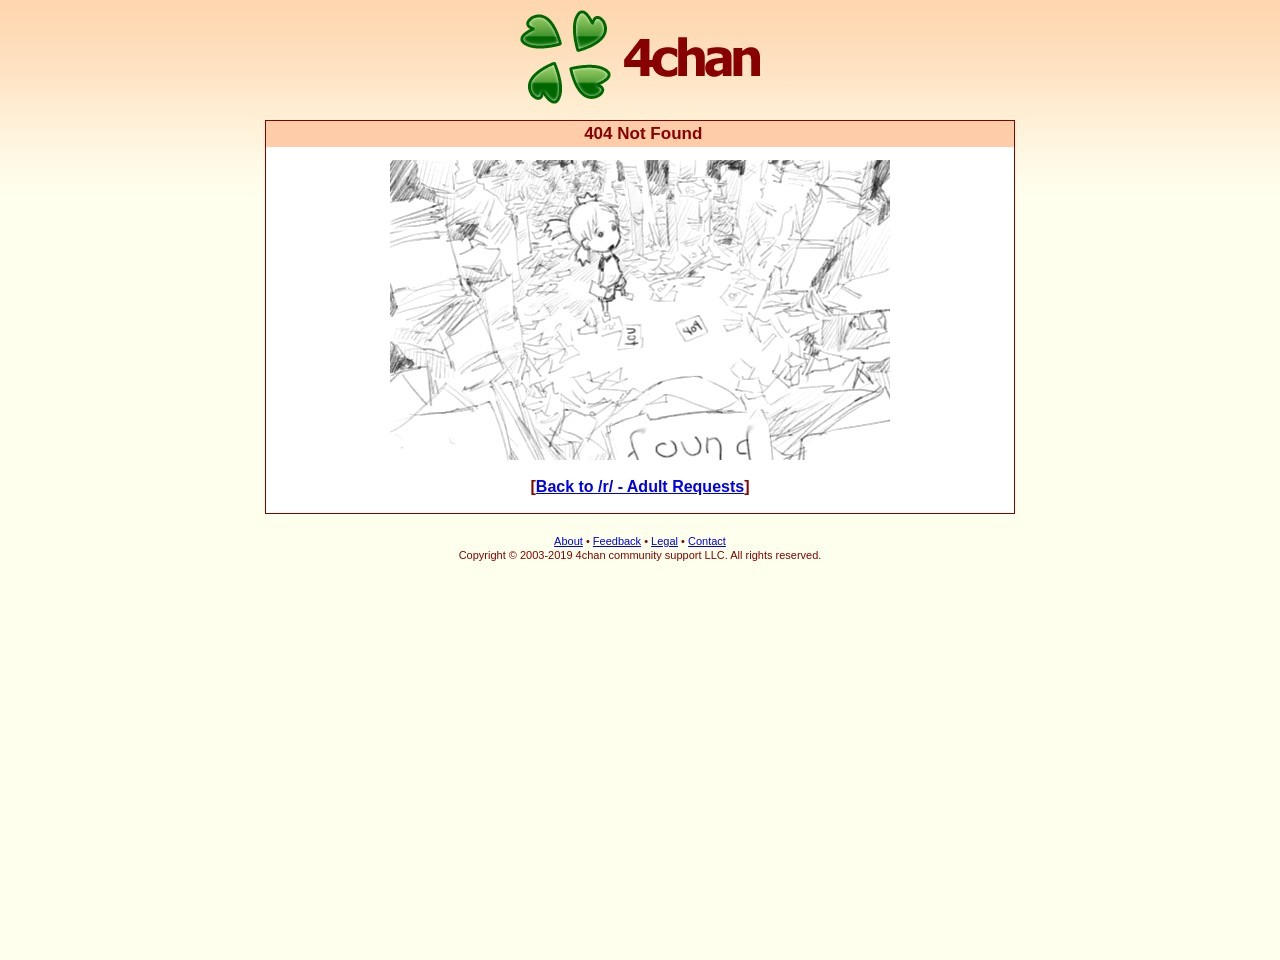 Who got it? Adult Requests 4chan